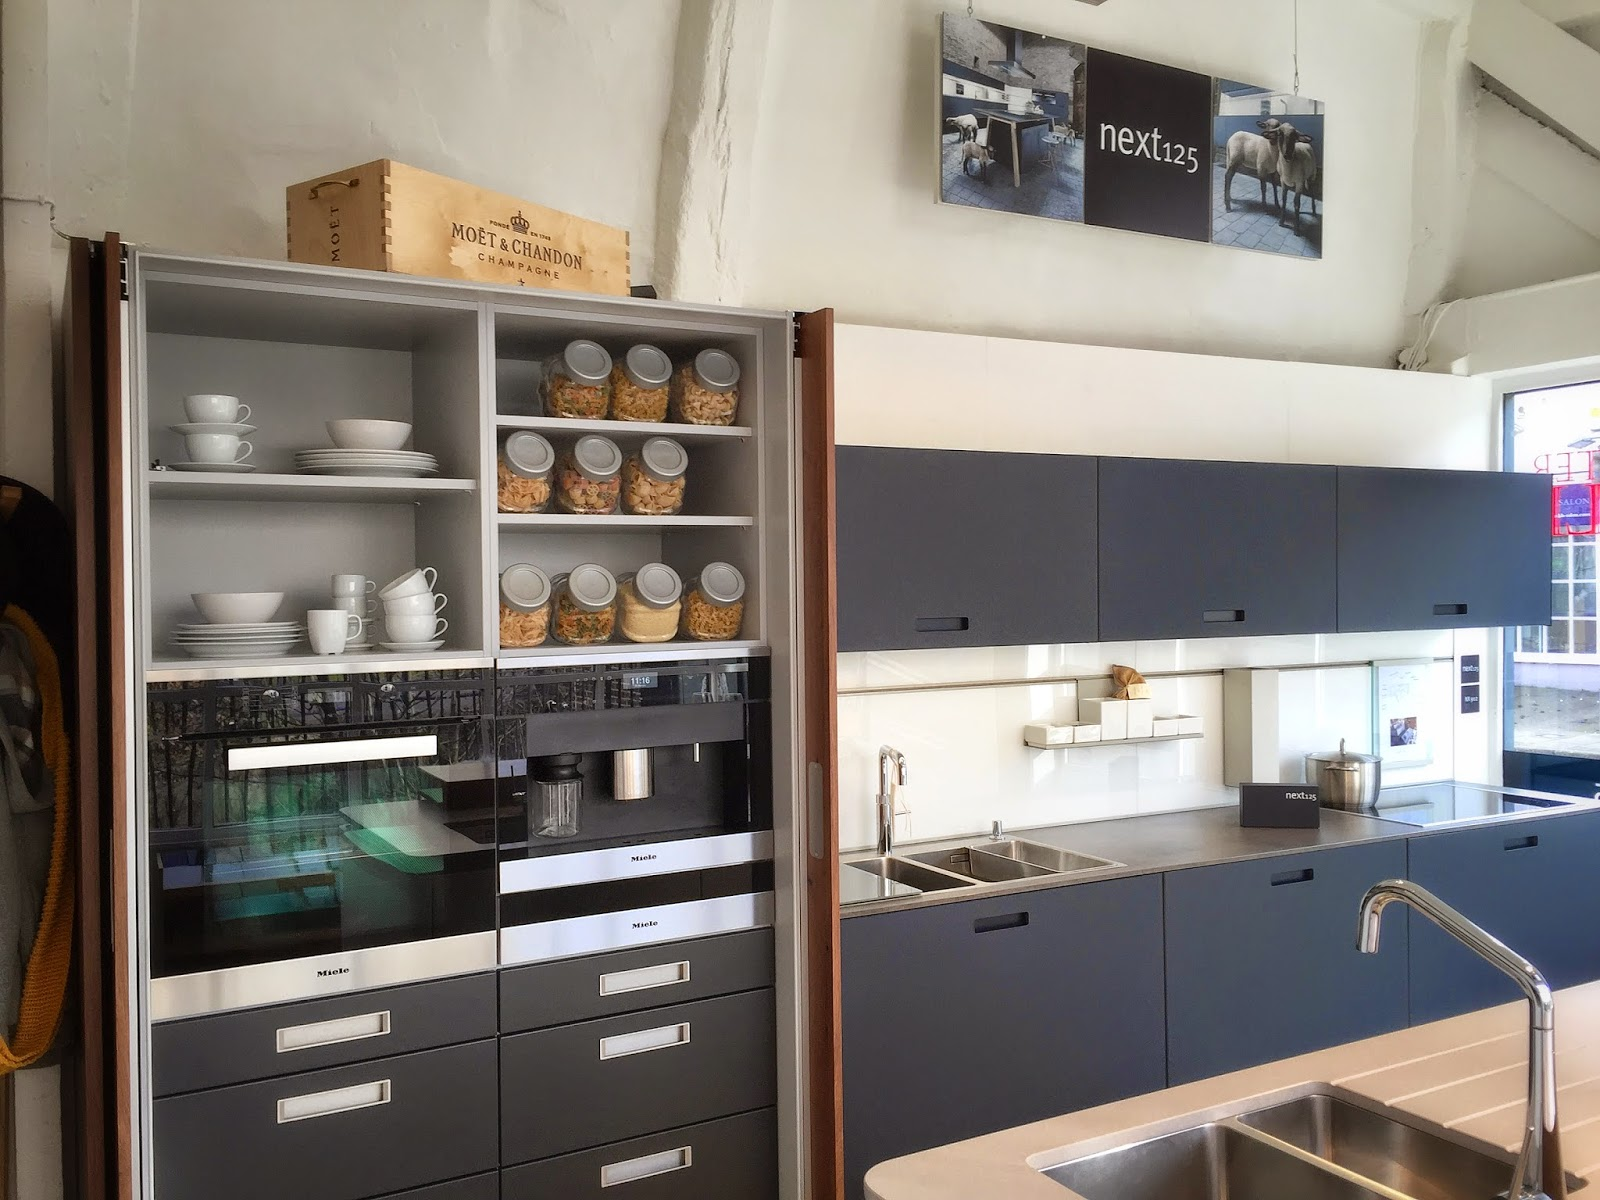 Our Beautiful Next125 Navy And Walnut Display With Miele Appliances.